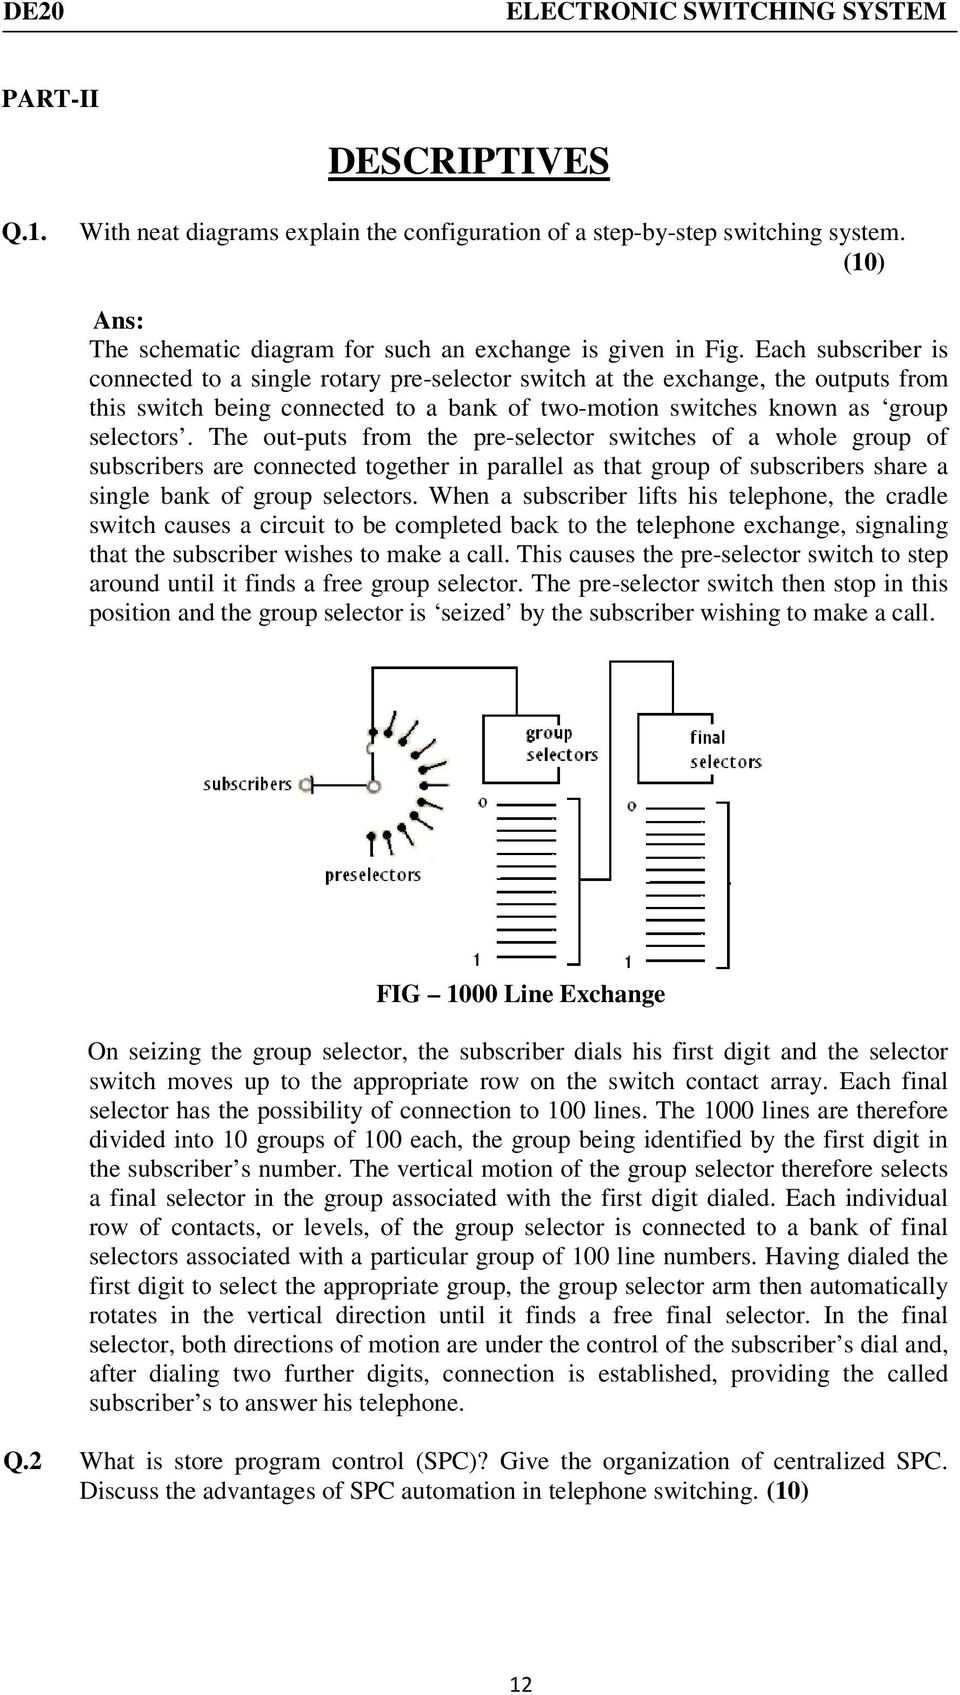 Typical Questions Answers Pdf Fig 2nd Simple Telephone Hybrid Circuit The Out Puts From Pre Selector Switches Of A Whole Group Subscribers